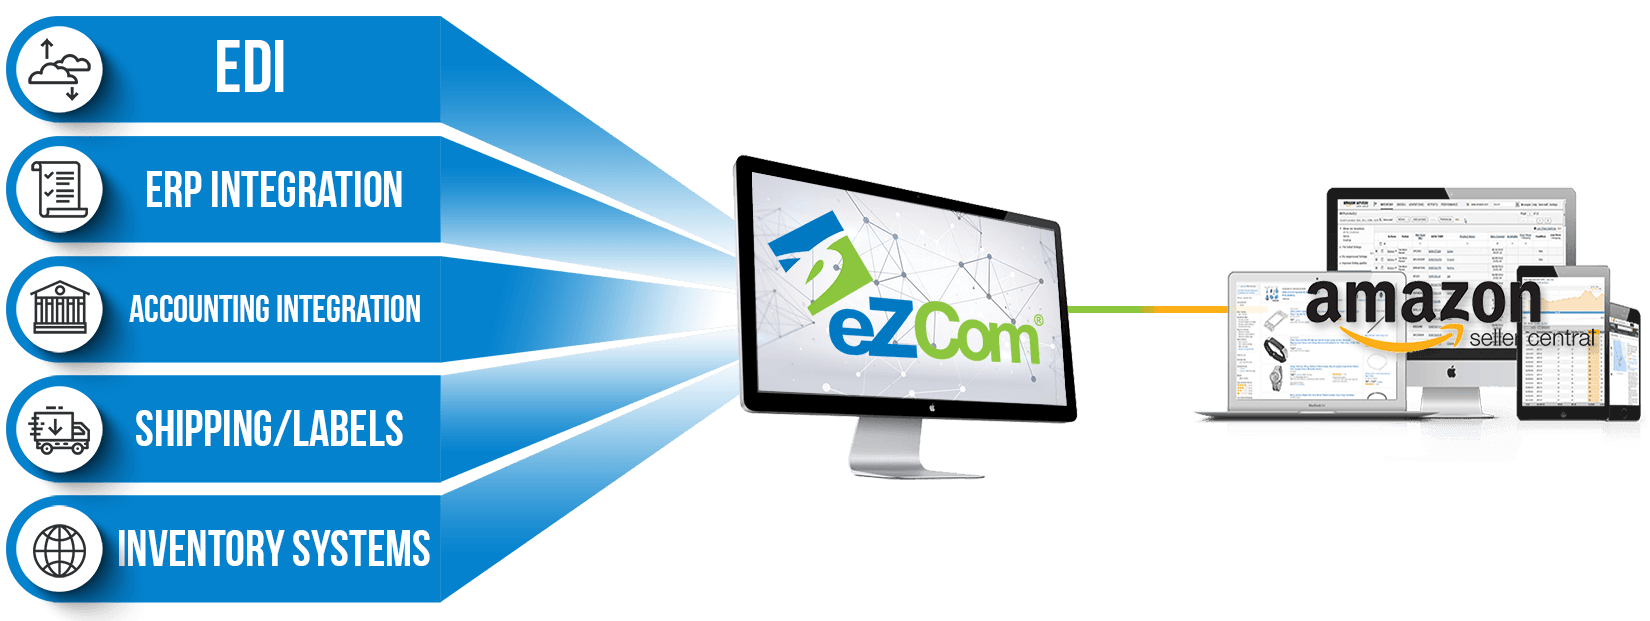 Infographic of eZCom's connection to Amazon Seller central